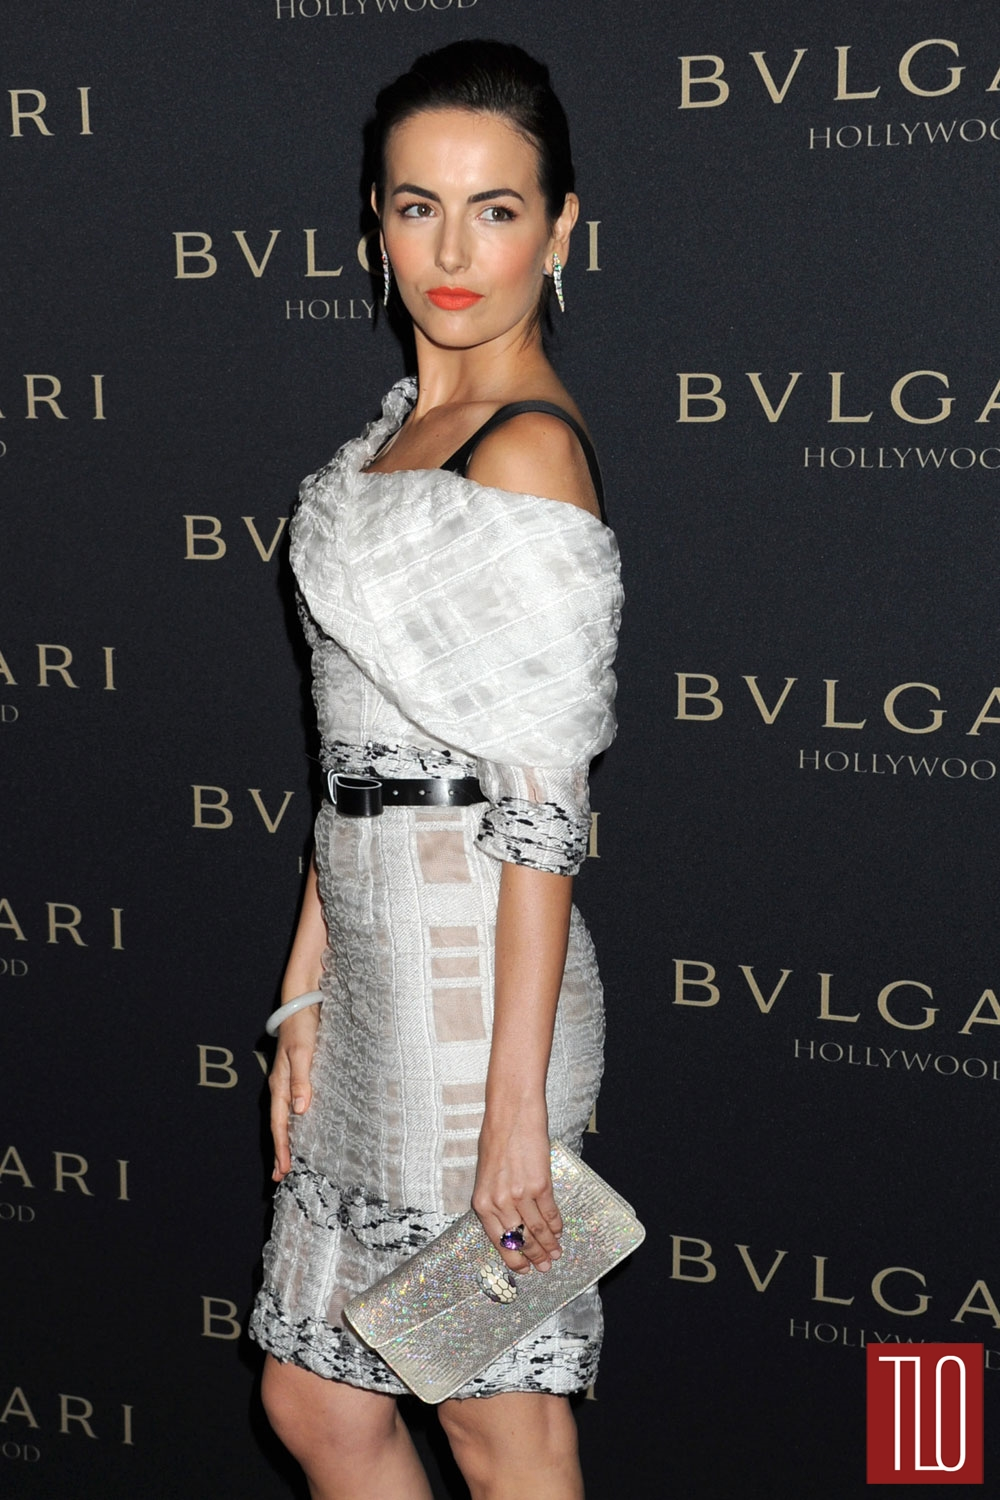 Camilla-Belle-Prabal-Gurung-Decades-Glamour-Bulgari-Tom-Lorenzo-Site-TLO (1)